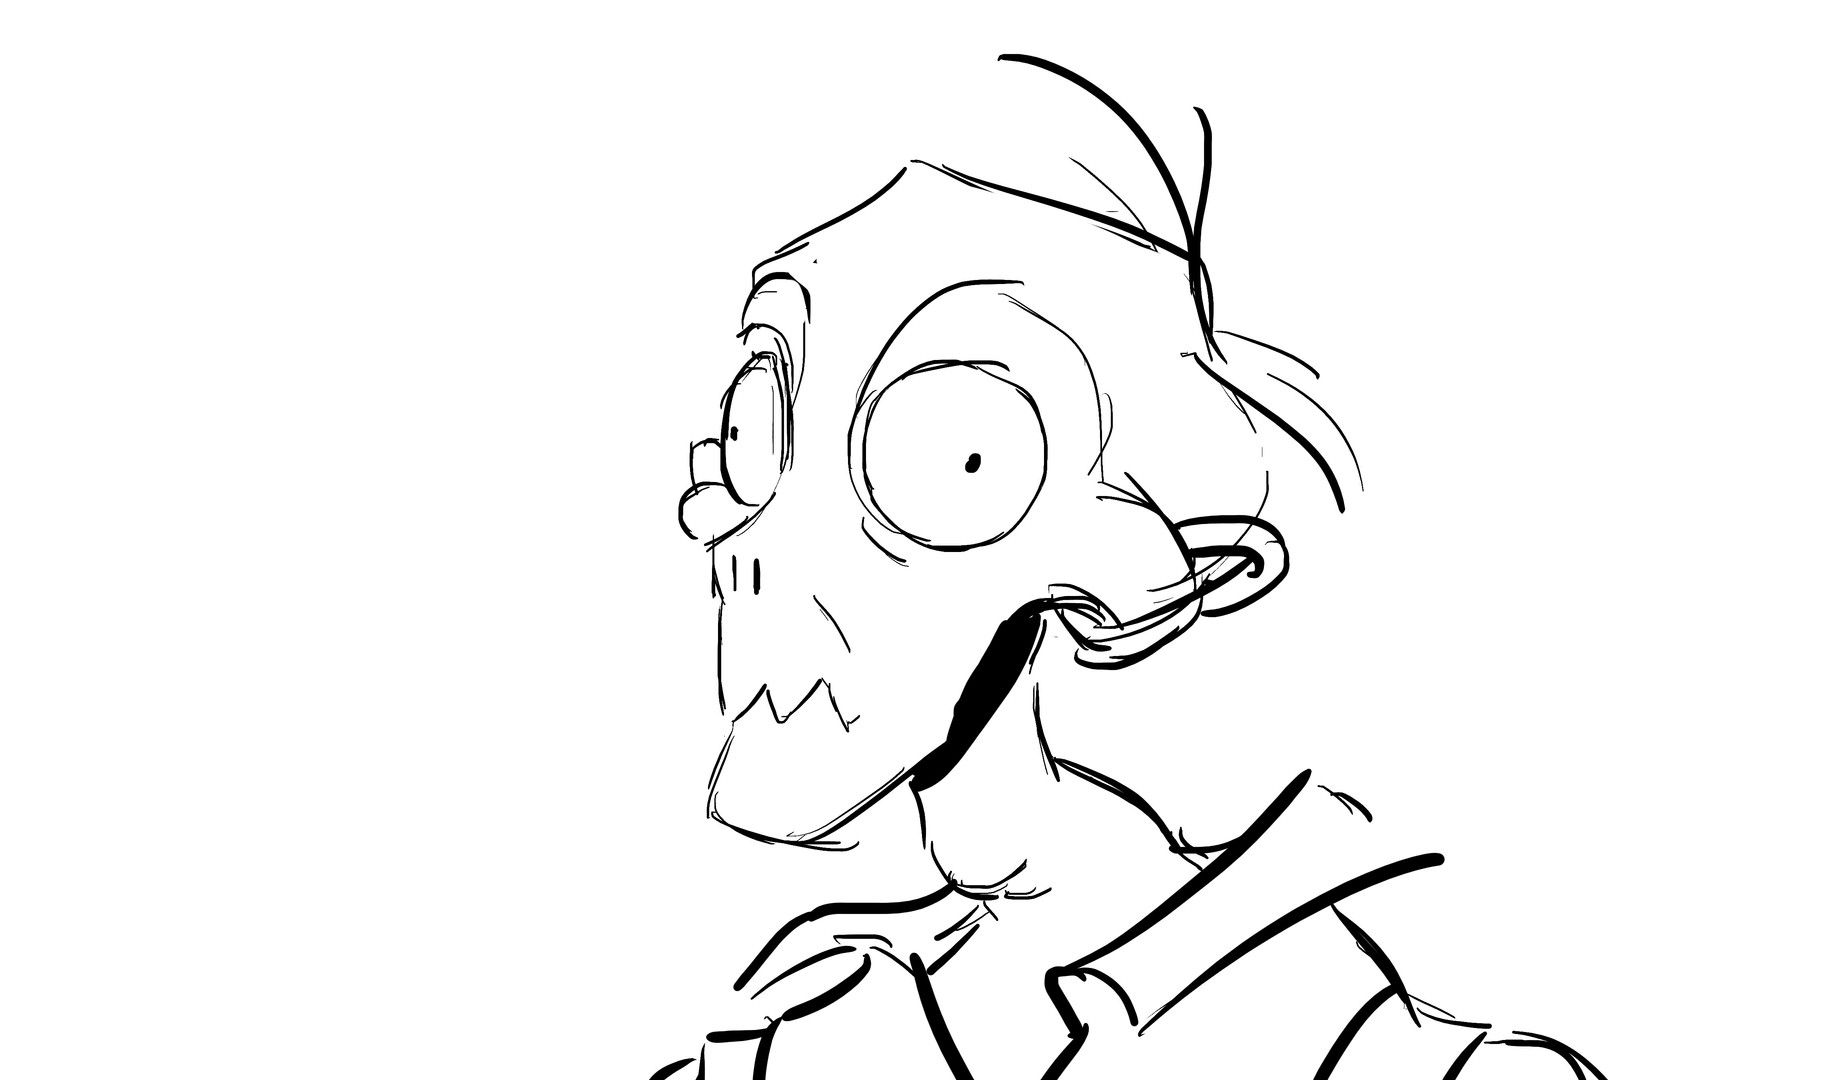 STORYBOARD - N - _0001_Layer Comp 7.jpg